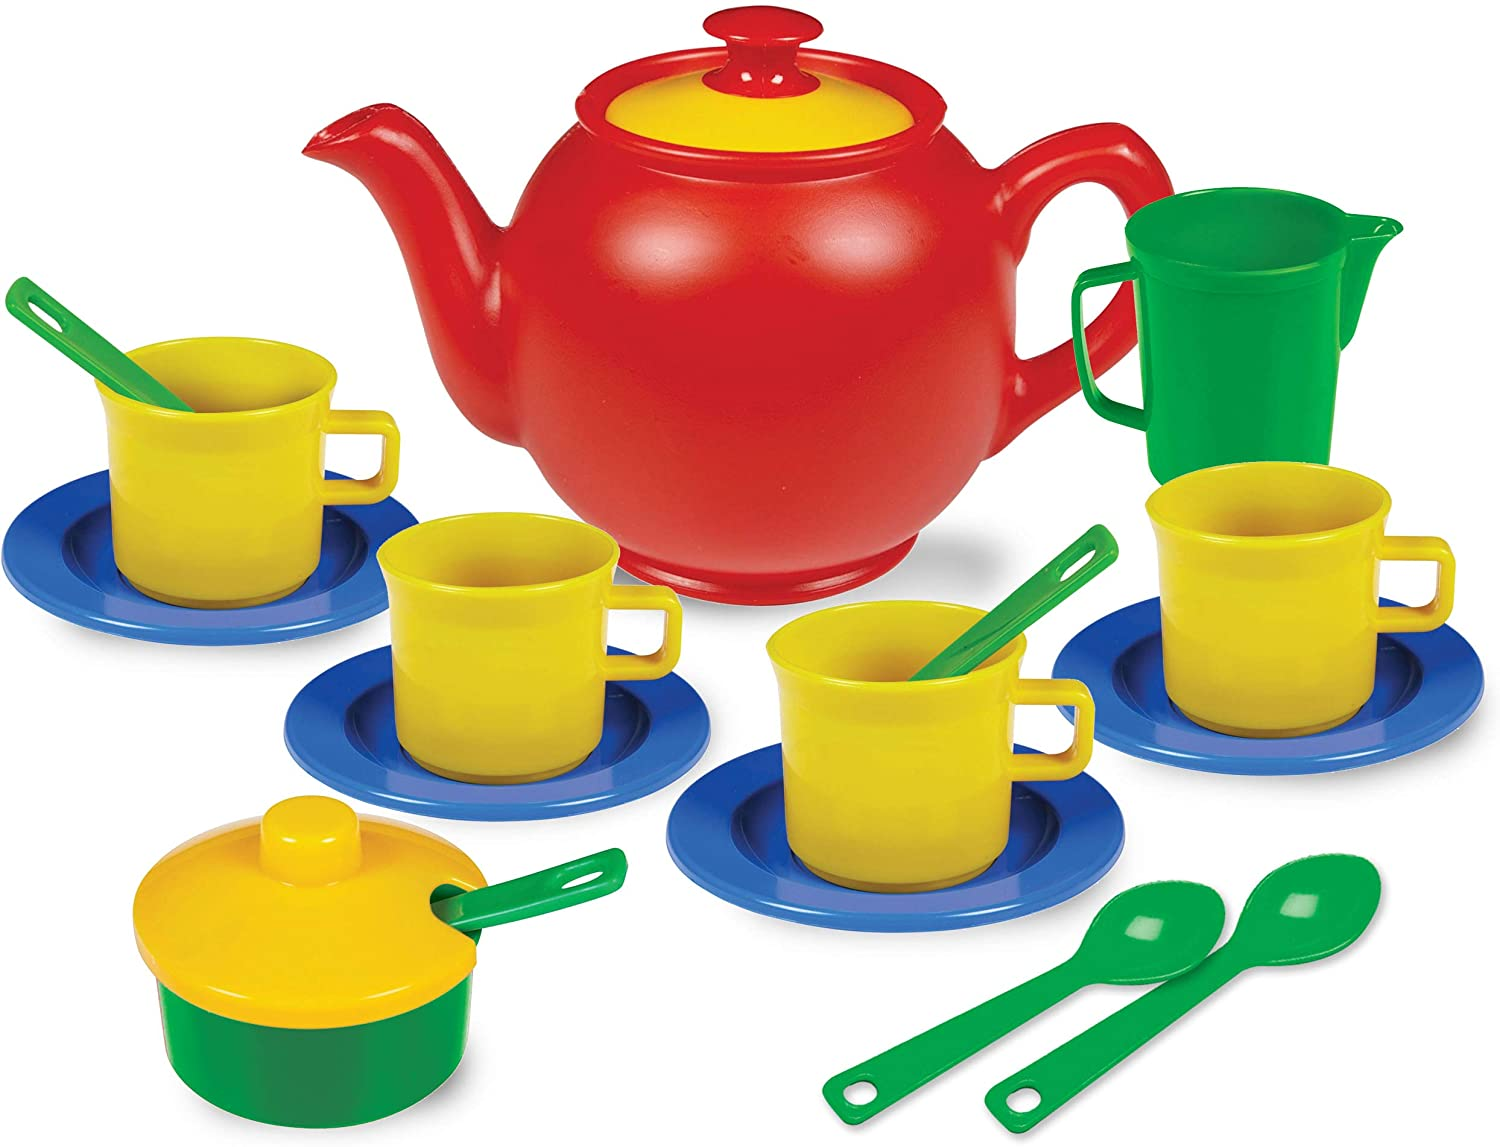 Kidzlane Play Tea Set 15+ Durable Pieces Safe Plastic Free Directly managed store shipping on posting reviews and BPA